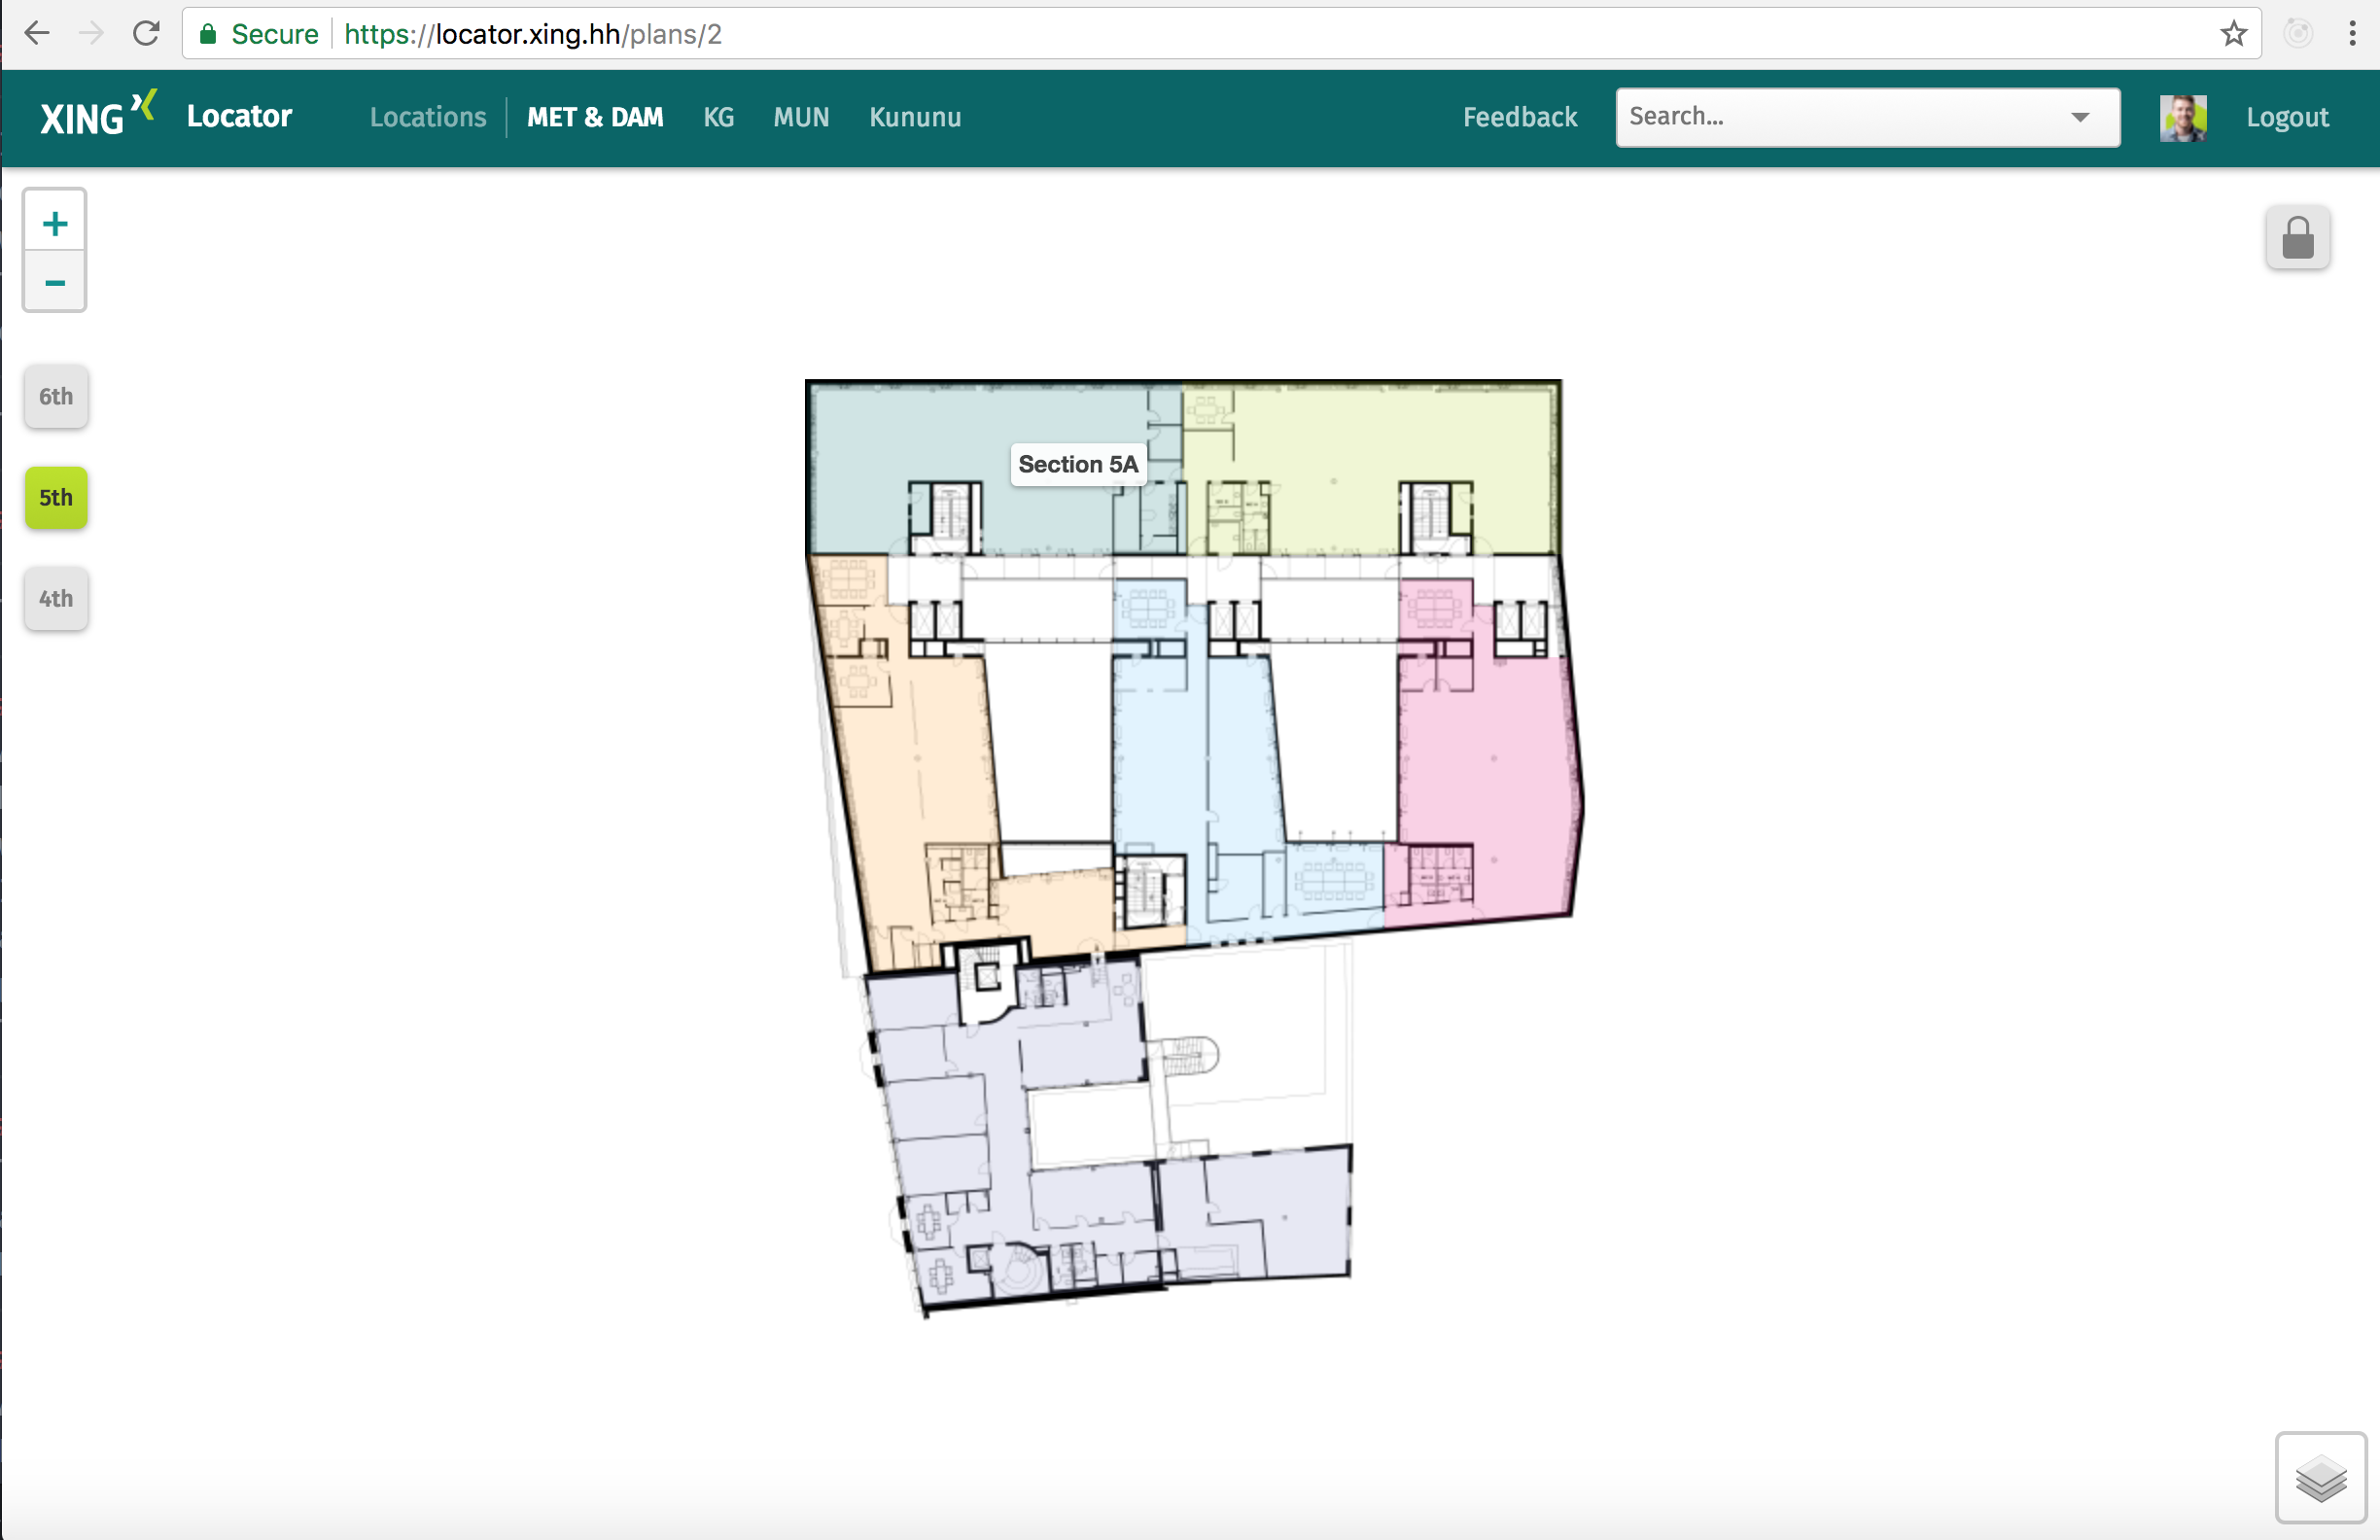 XING Locator: an interactive floor plan using Rails and Leaflet js